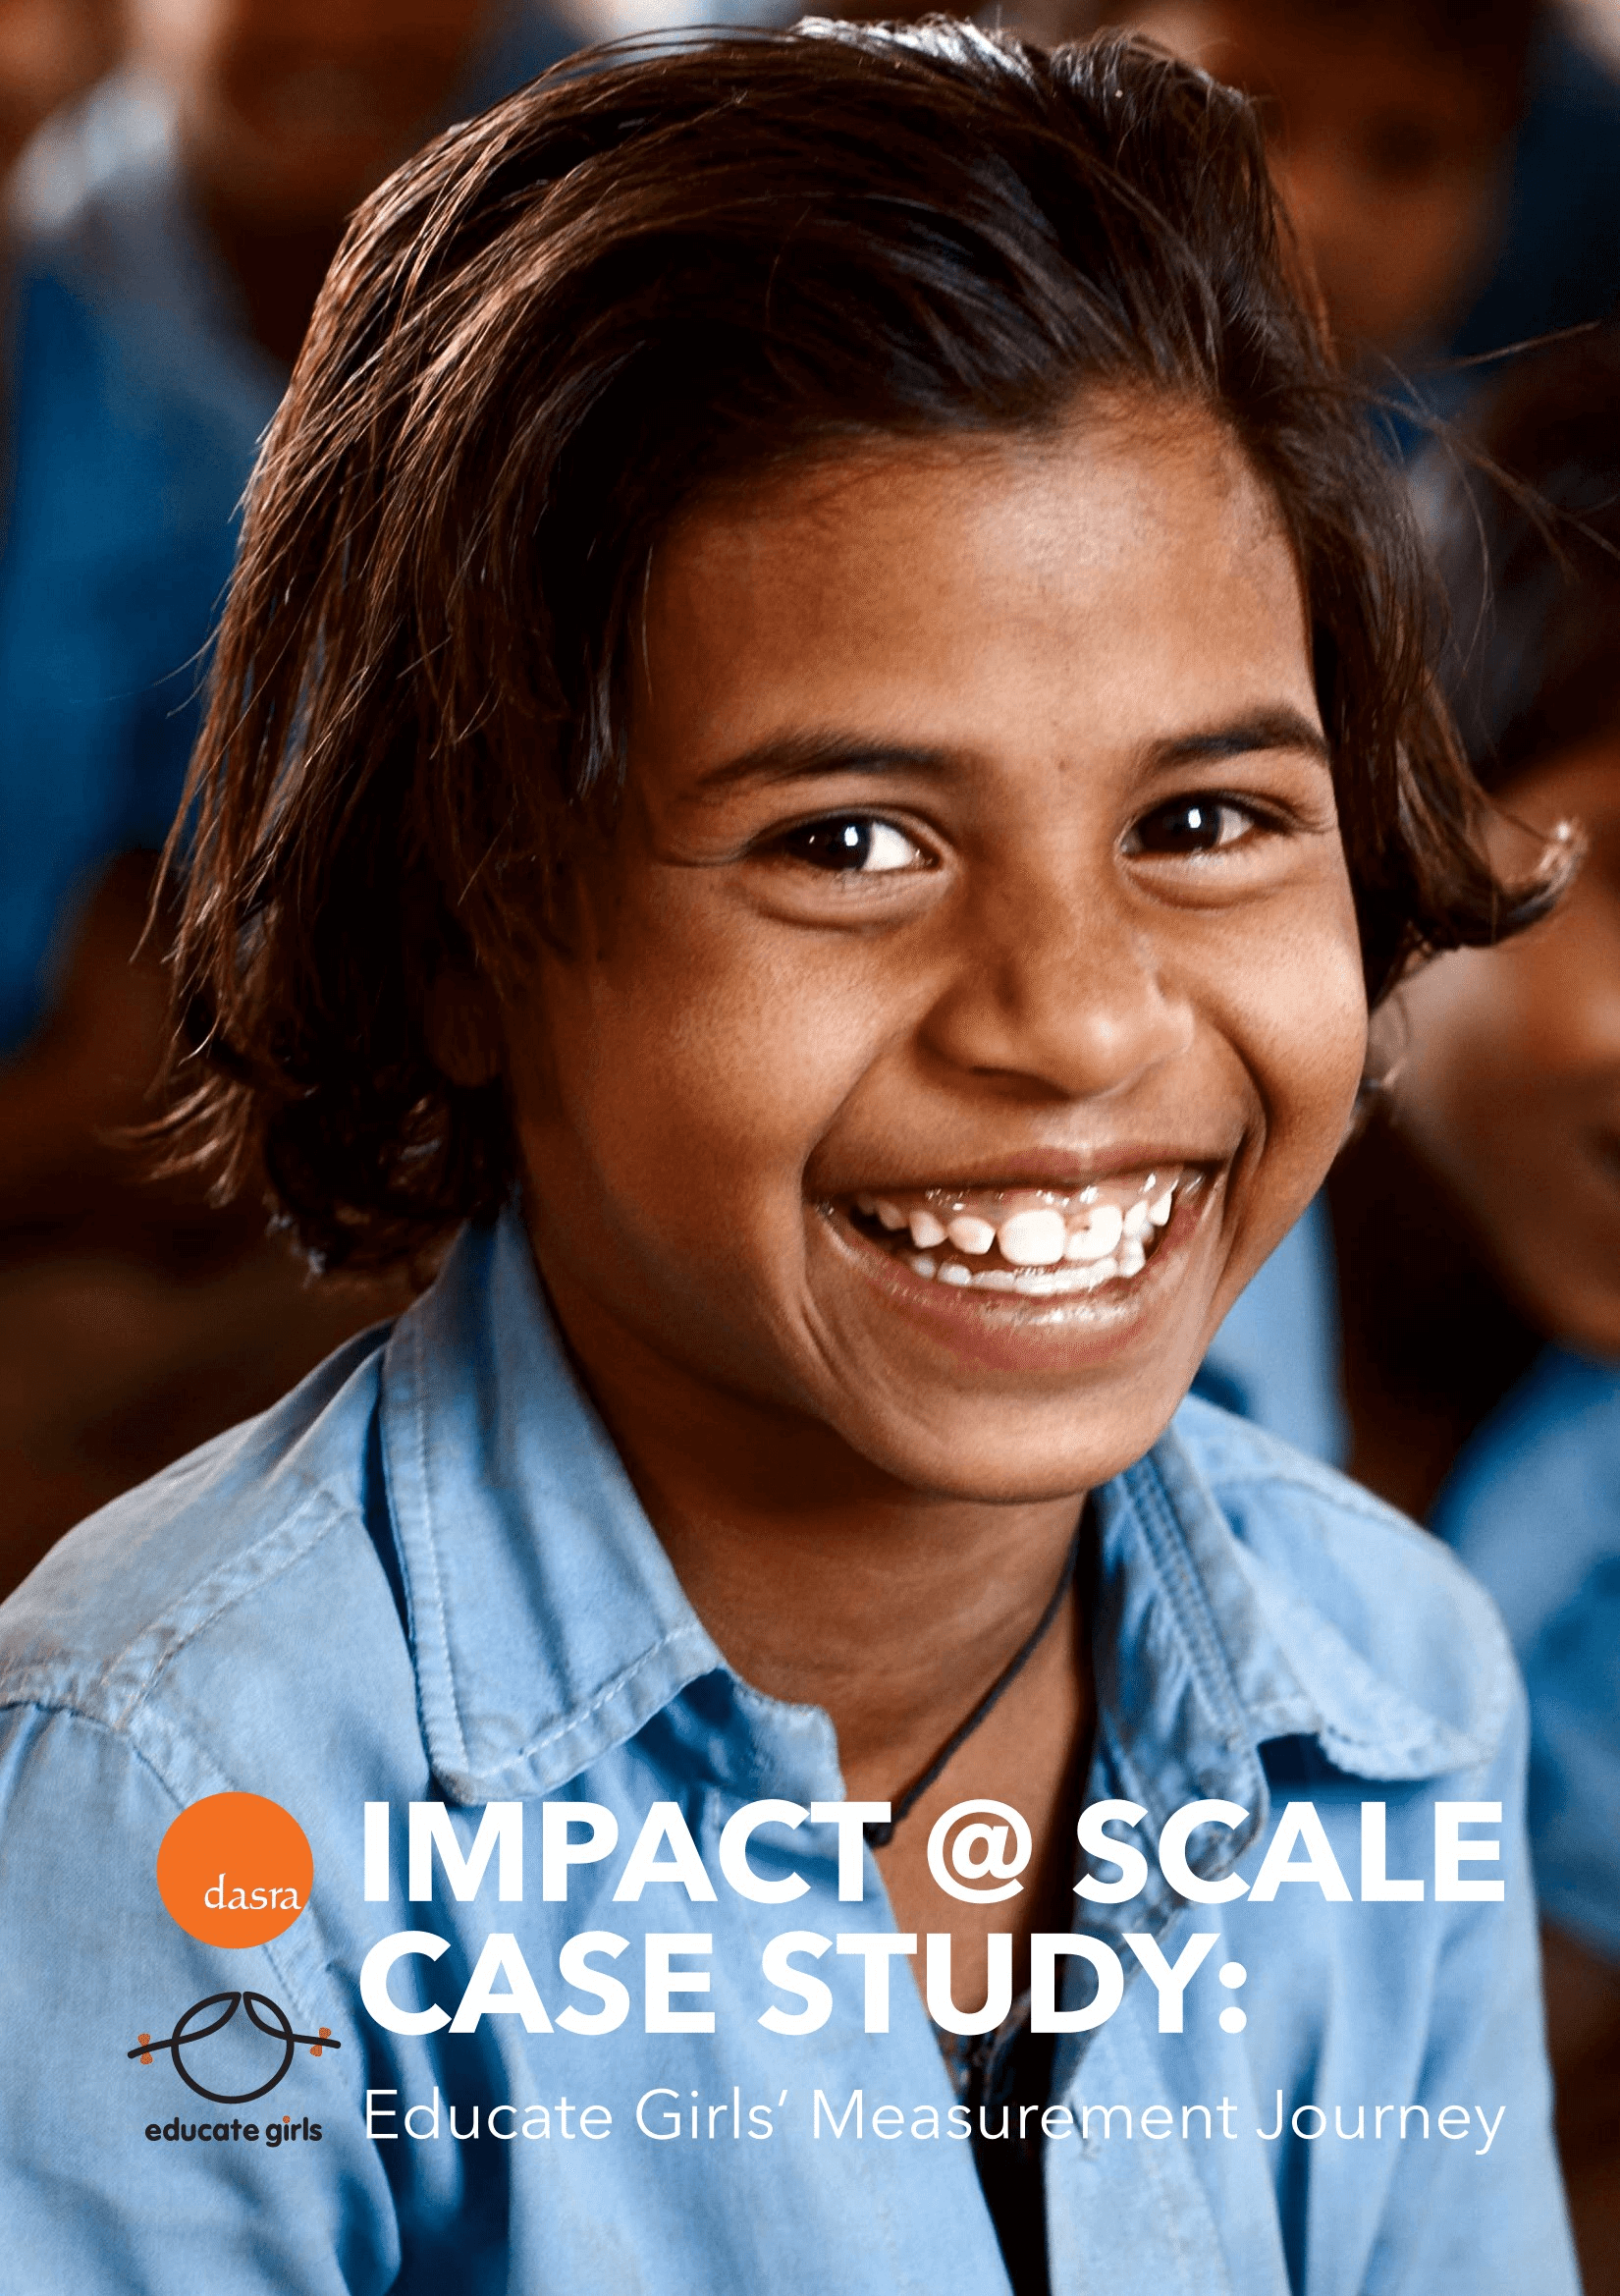 Impact @ Scale Case Study: Educate Girls' Measurement Journey